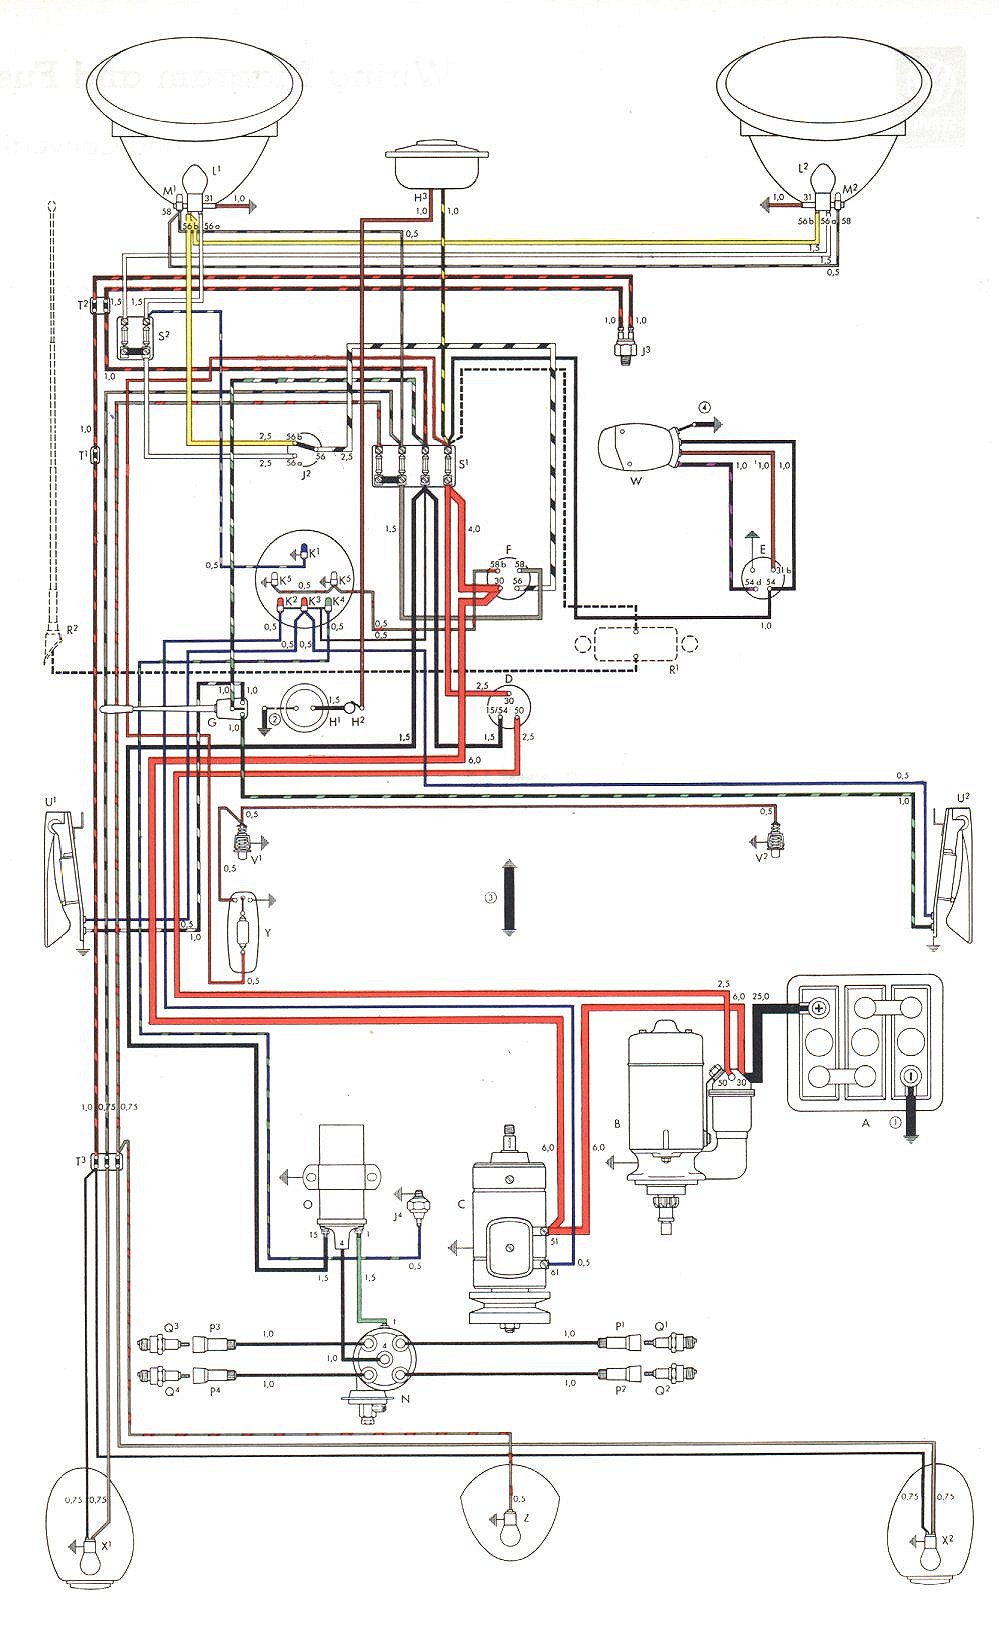 wiring diagram 1957 chevy 1967 vw beetle - wiring diagram brown-pure -  brown-pure.lechicchedimammavale.it  lechicchedimammavale.it